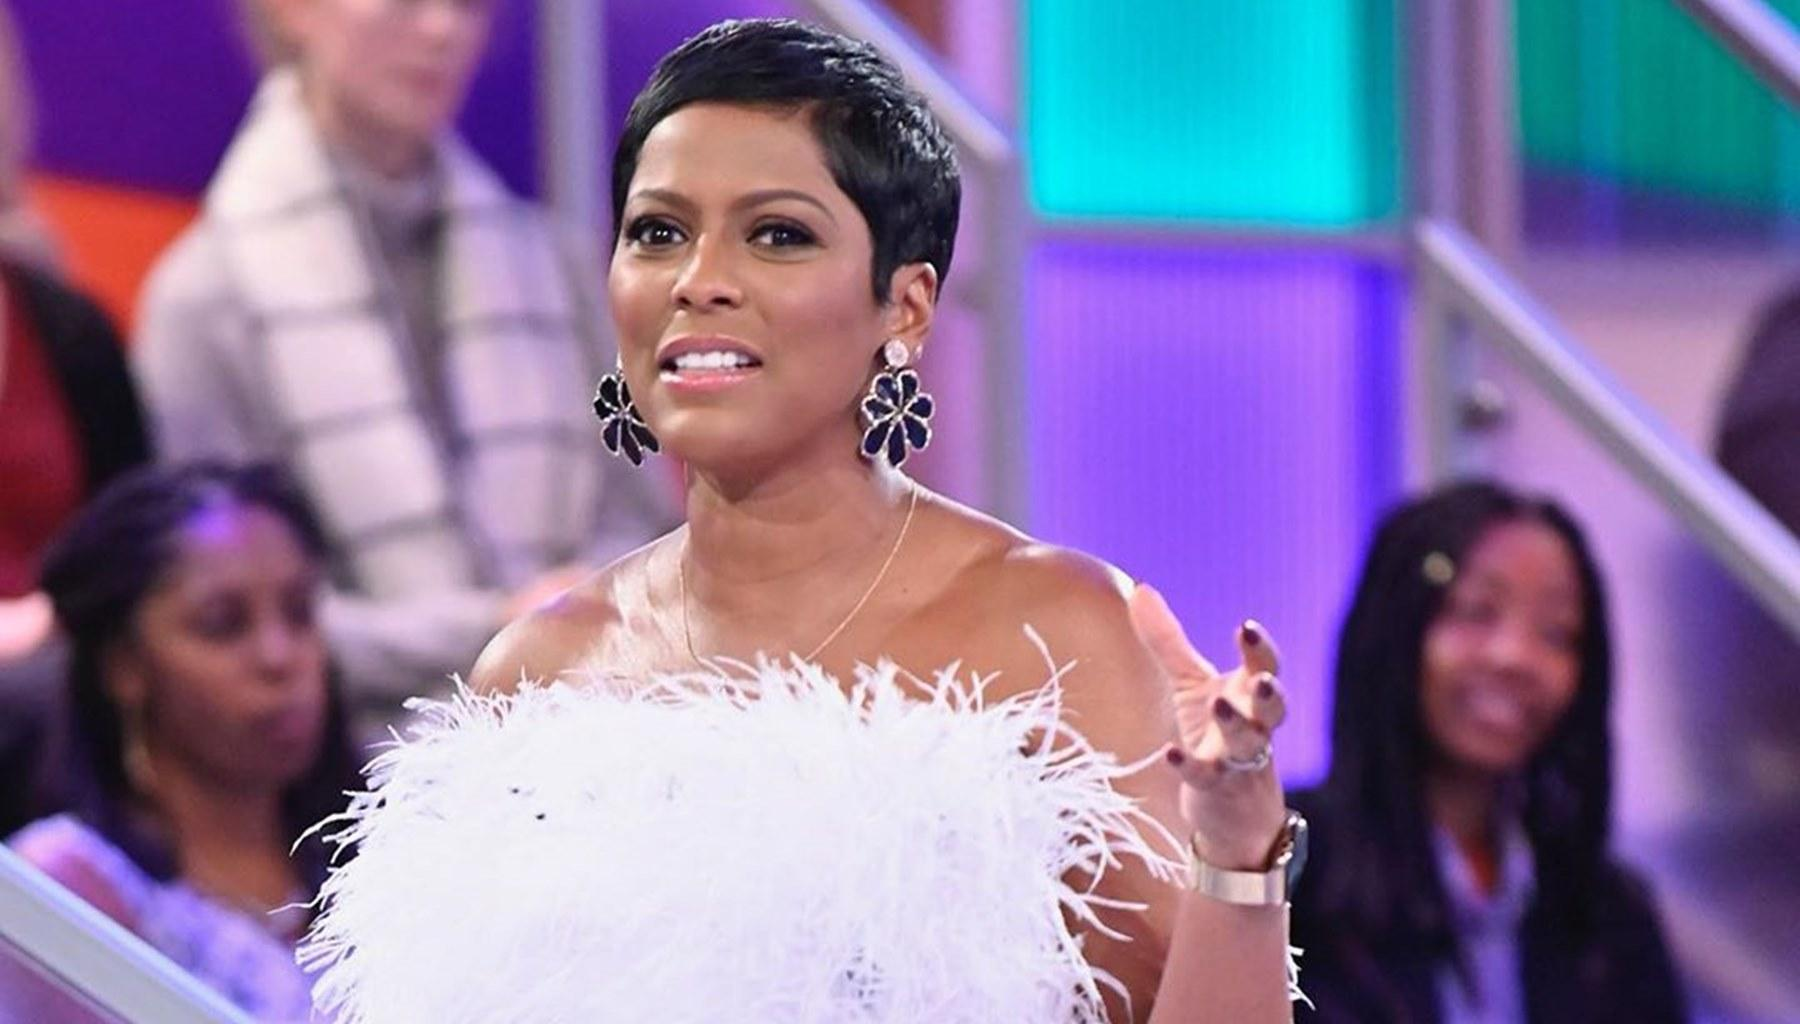 Tamron Hall Shares Sweet Photo Of Herself, With Her Husband, Steven Greener, And Their Son, Moses, Rocking The Same Hairstyle